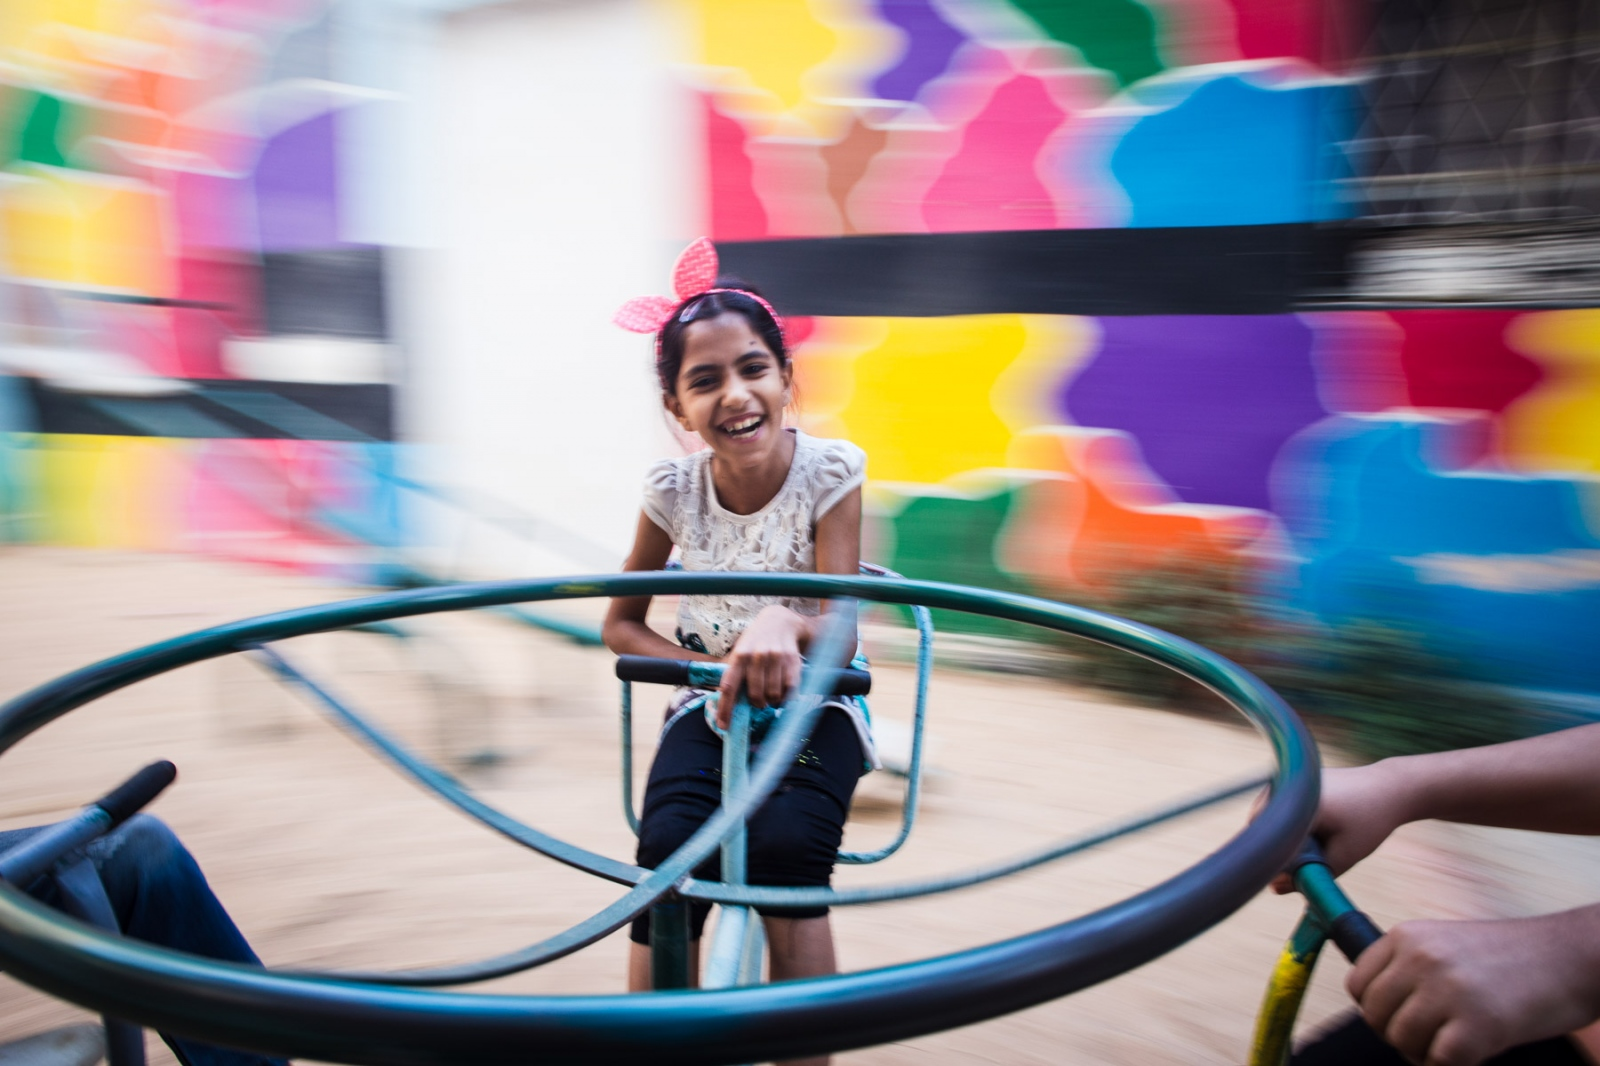 Tabarak, originally from Iraq, spins on a carousel in the playground area of Collateral Repair Project, a local NGO in East Amman.